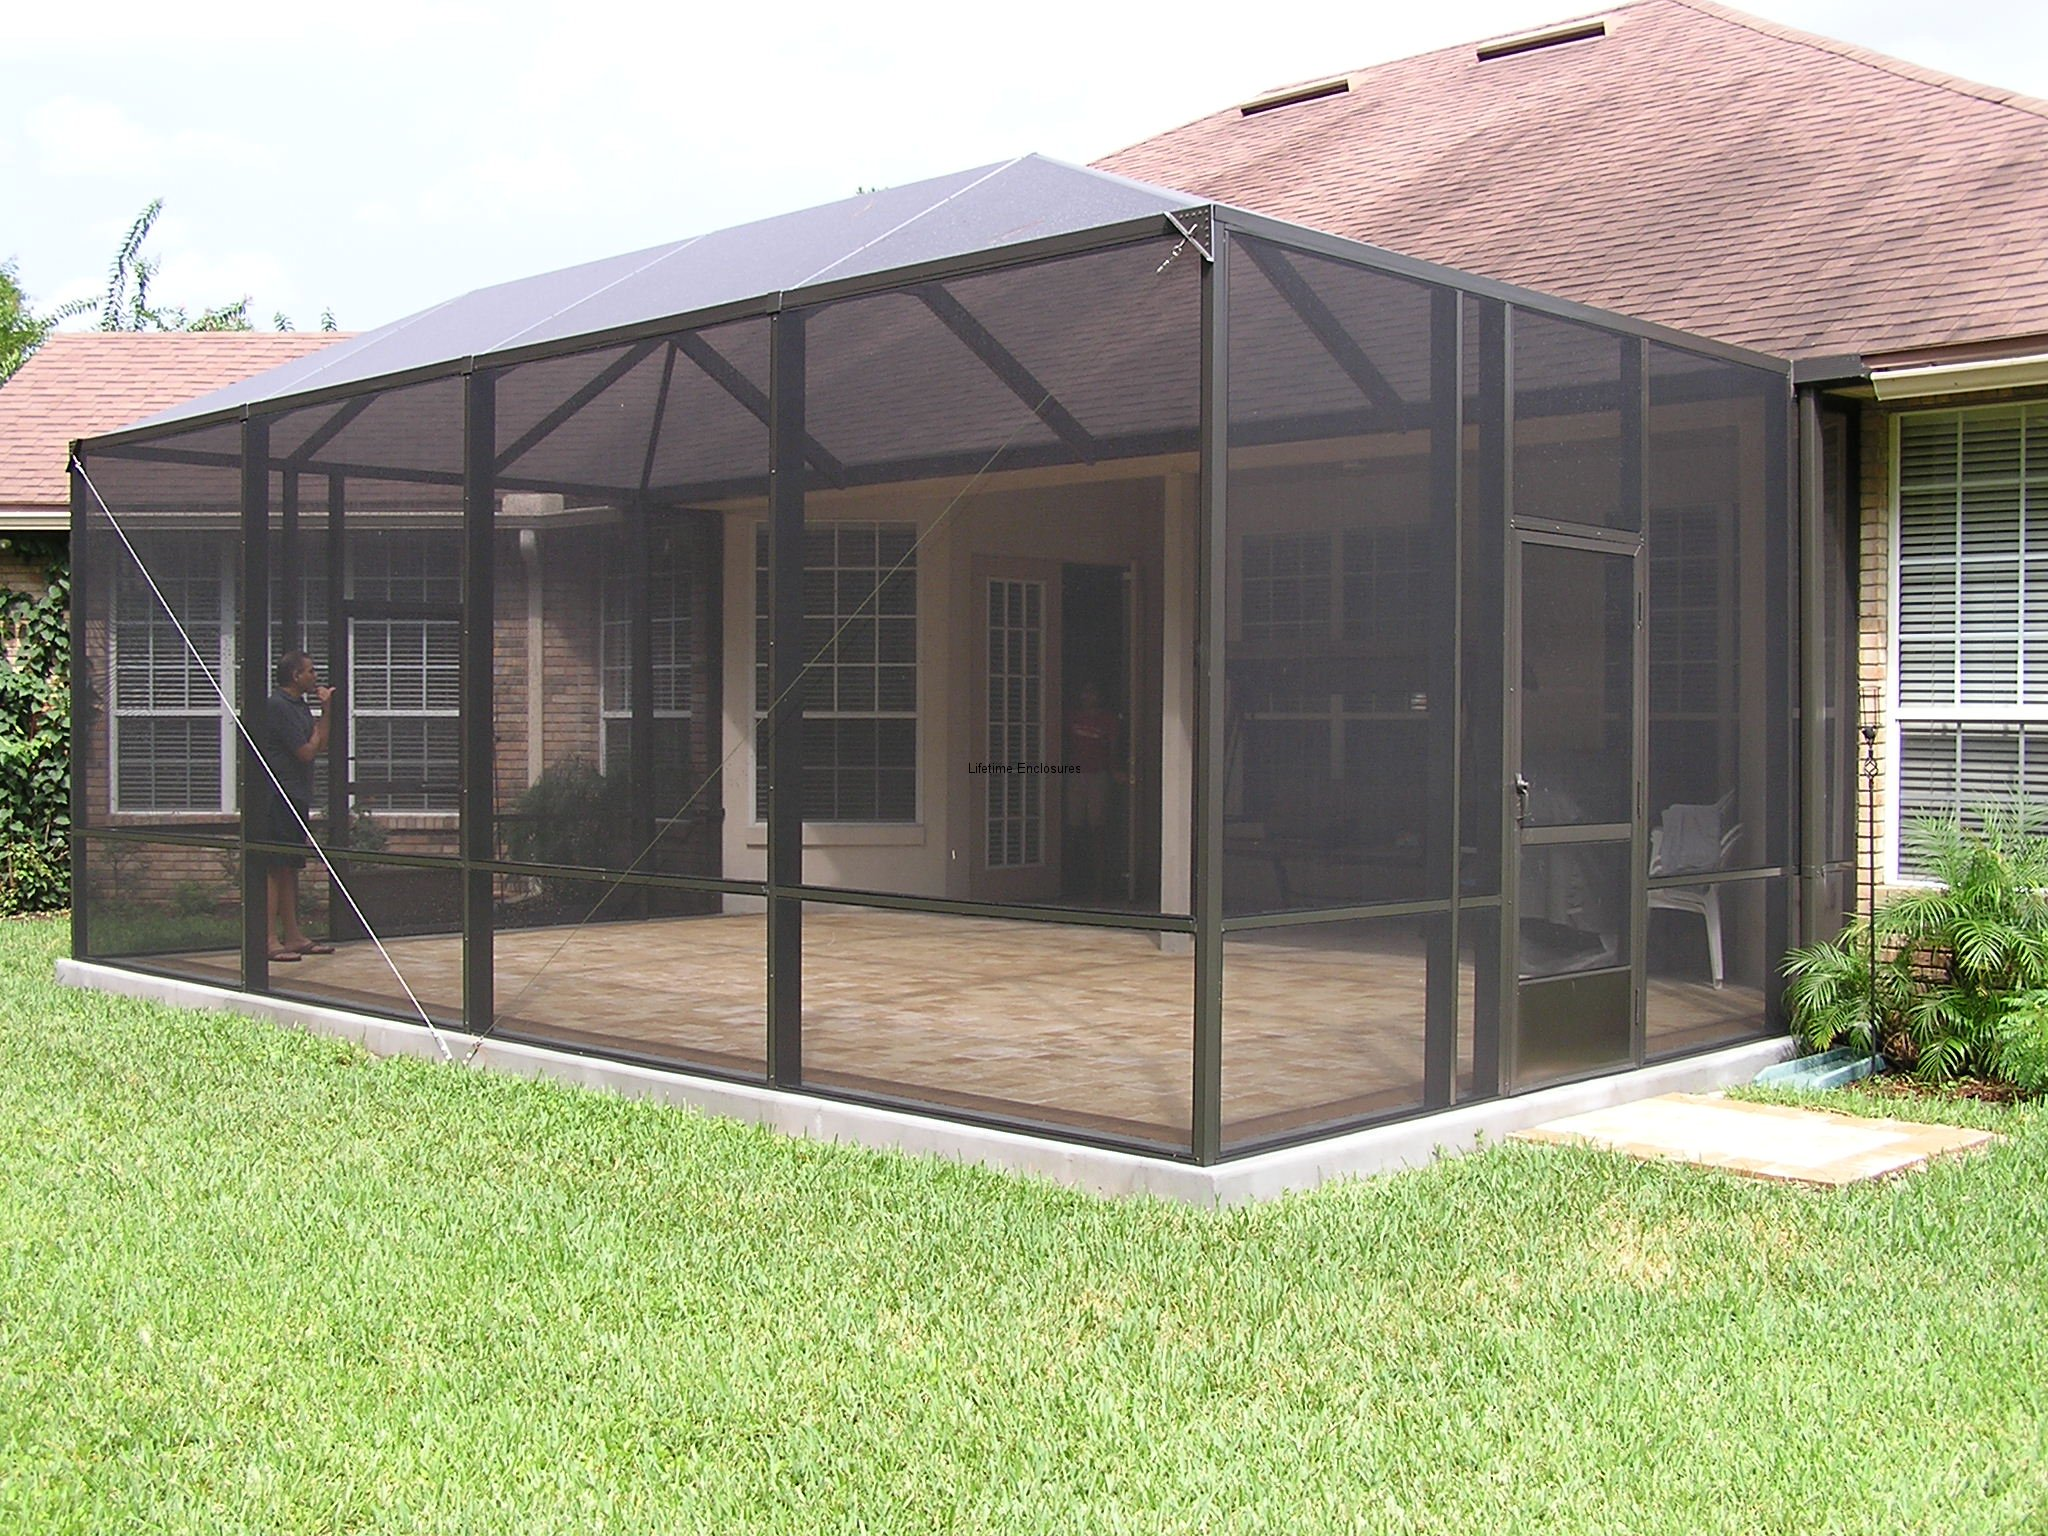 Design a screened in patio joy studio design gallery best design Screened porch plans designs